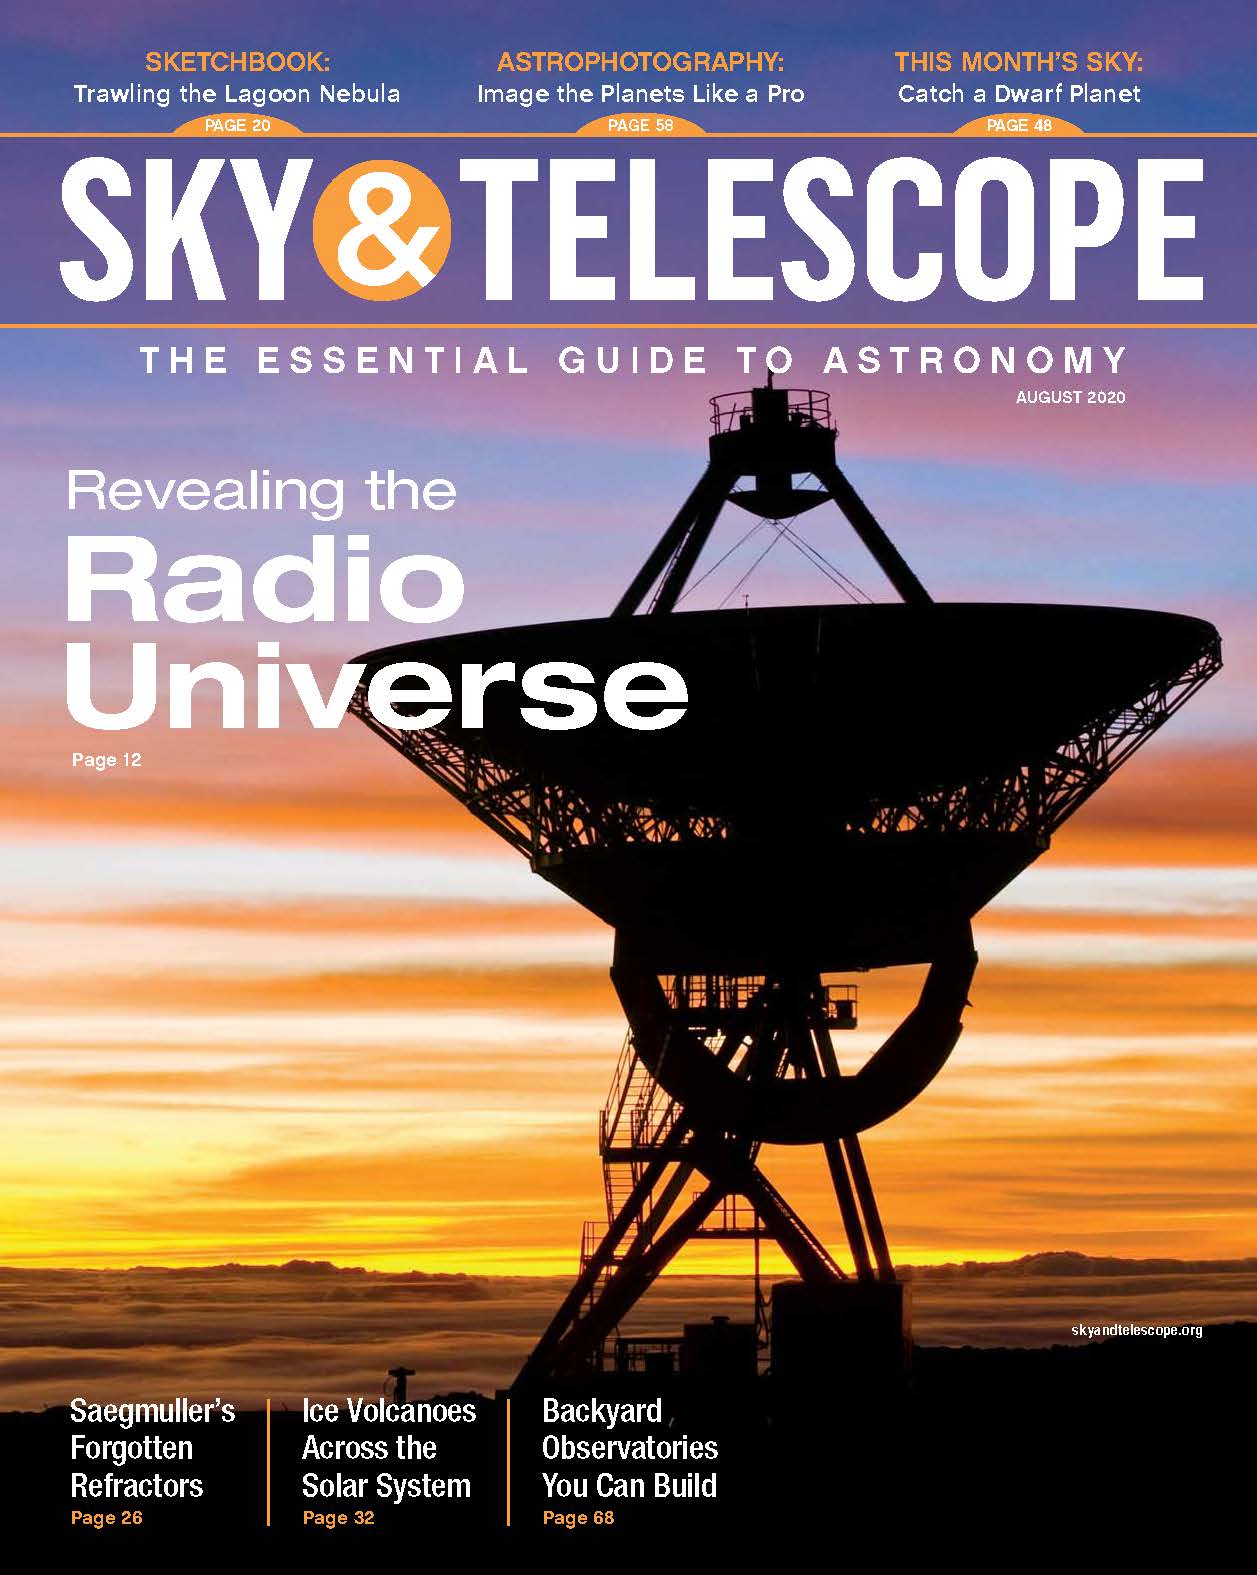 Sky & Telescope August 2020 Issue